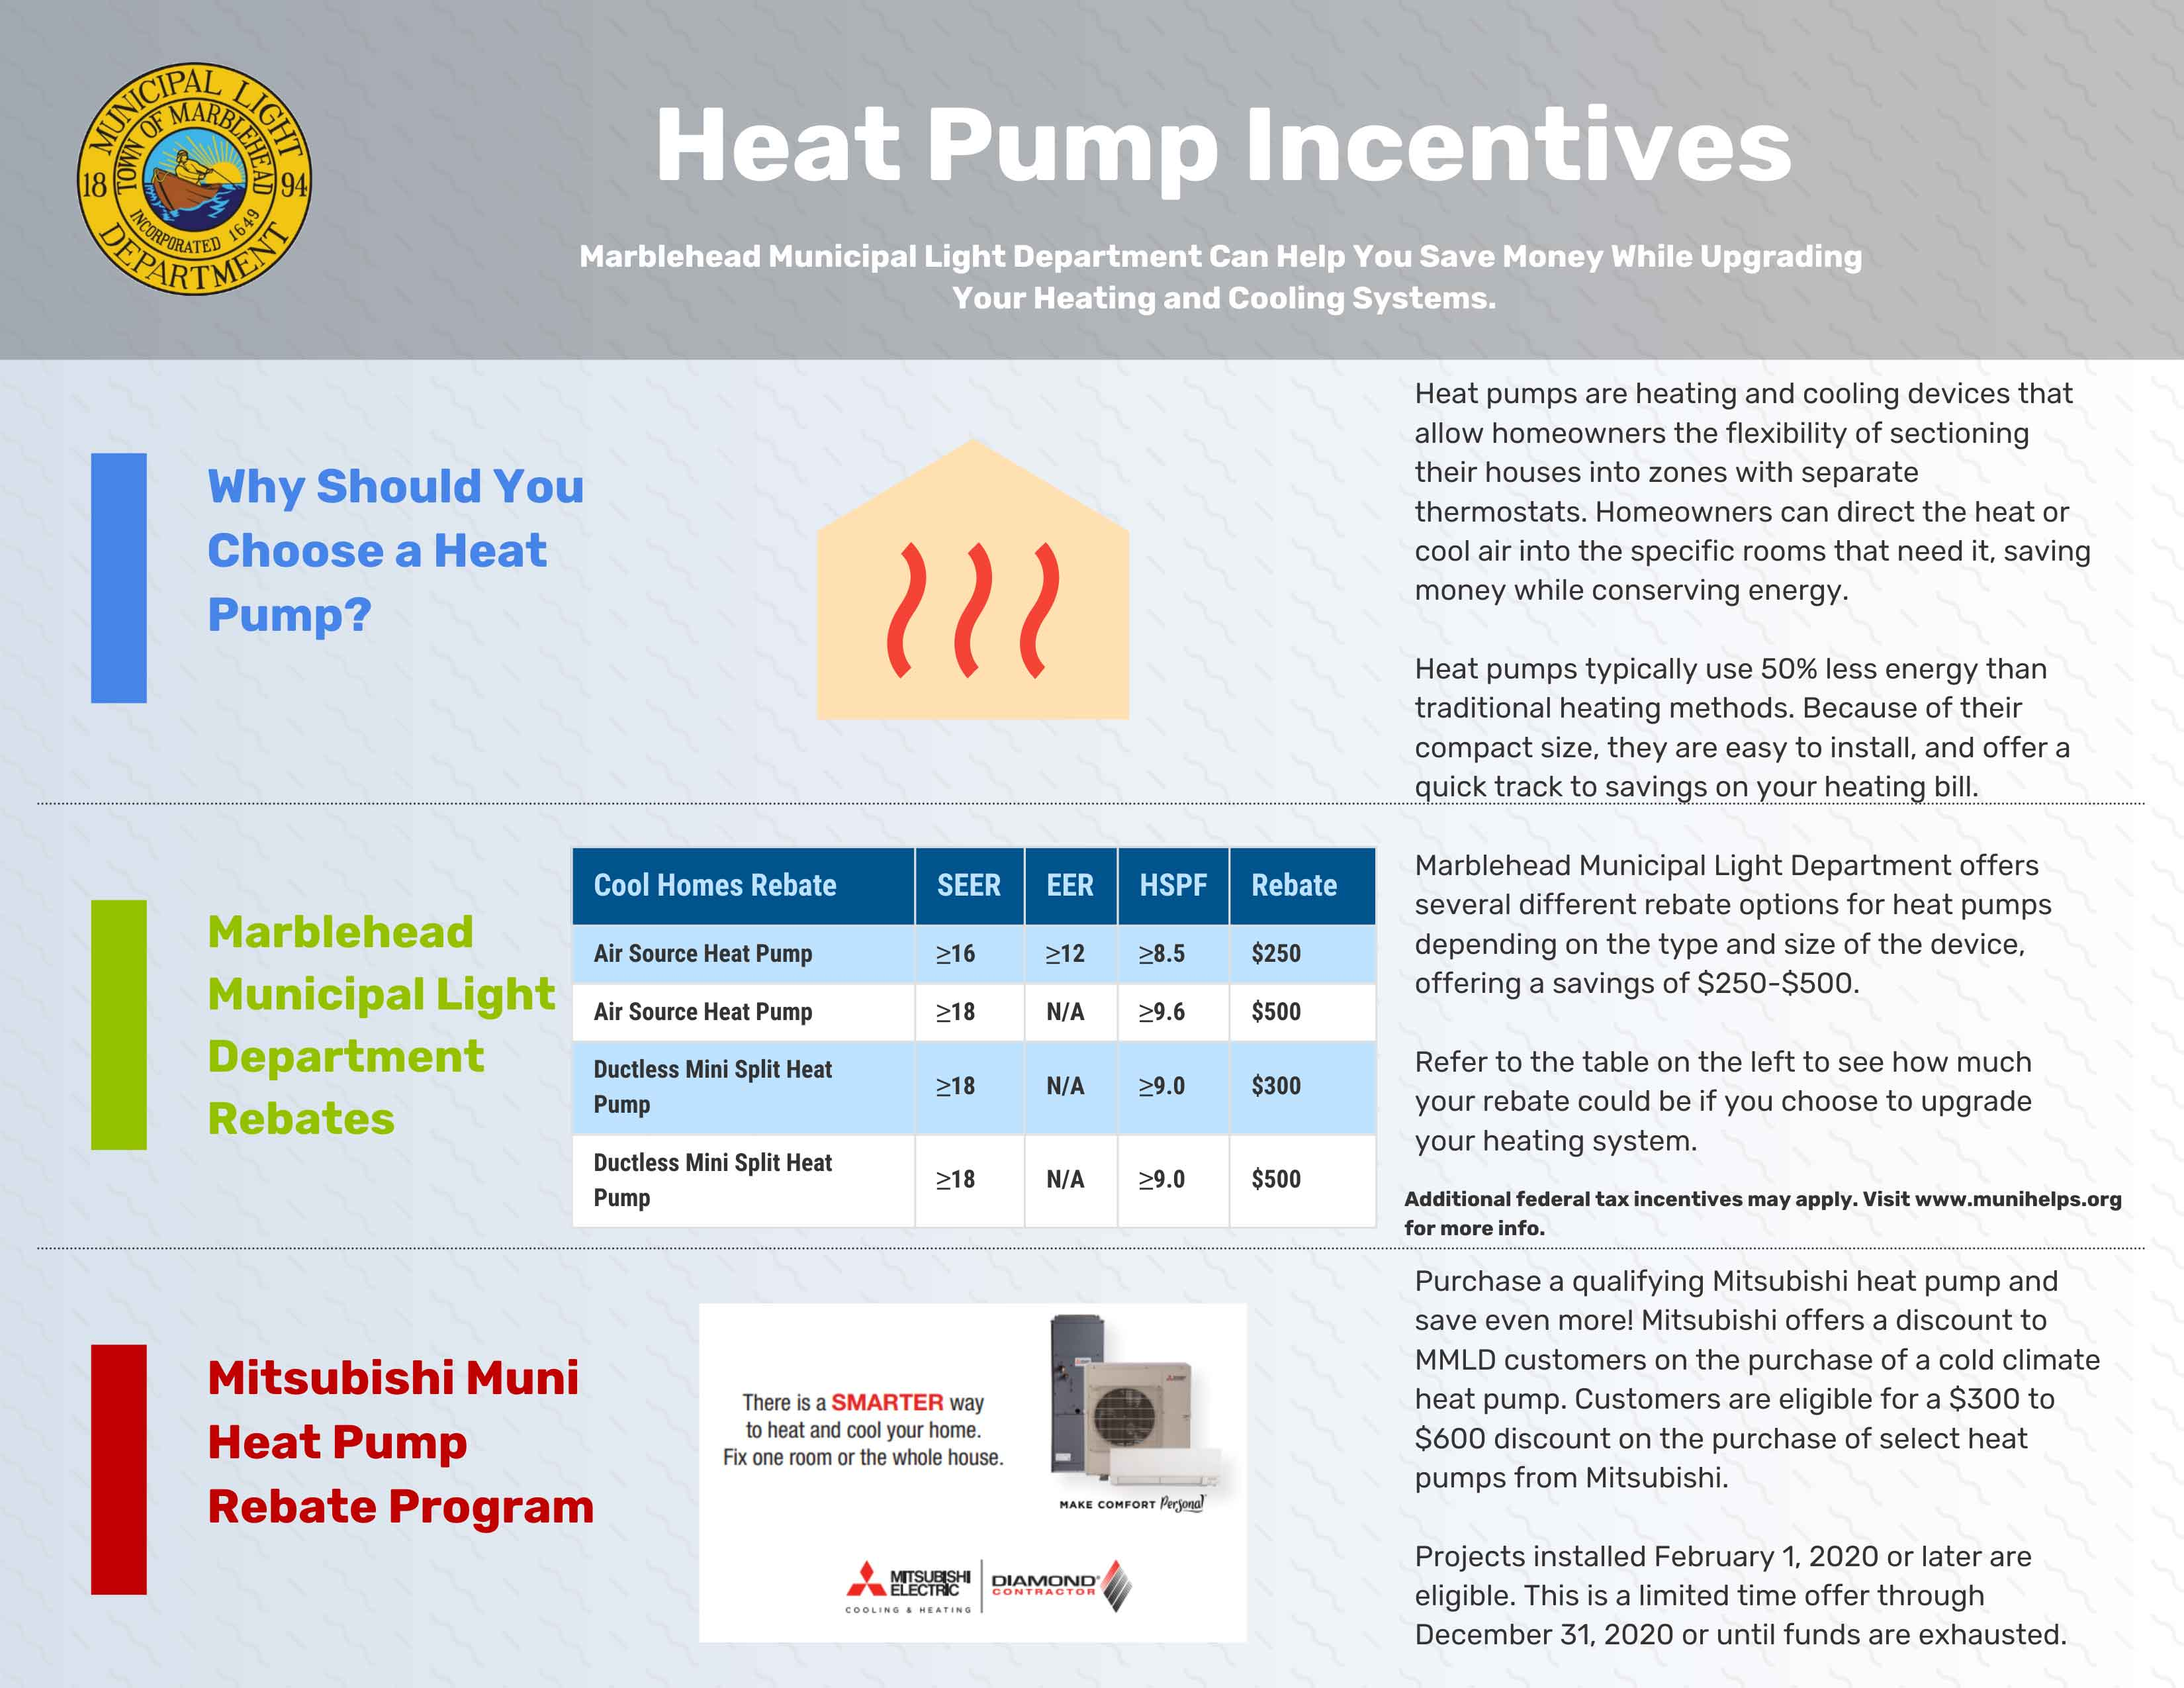 Marblehead Heat Pump Incentives graphic